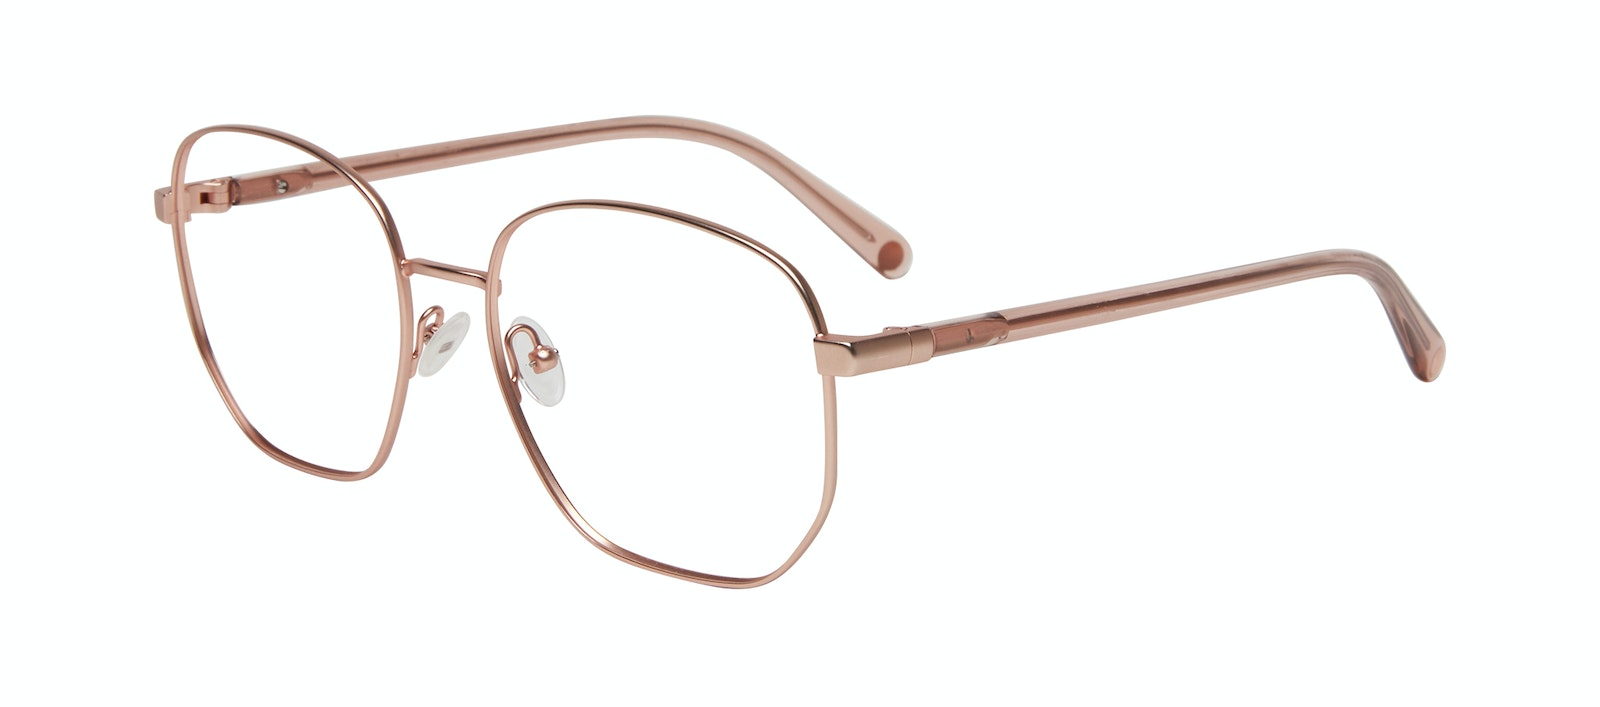 Affordable Fashion Glasses Round Eyeglasses Women Laïka Rose Gold Matte Tilt